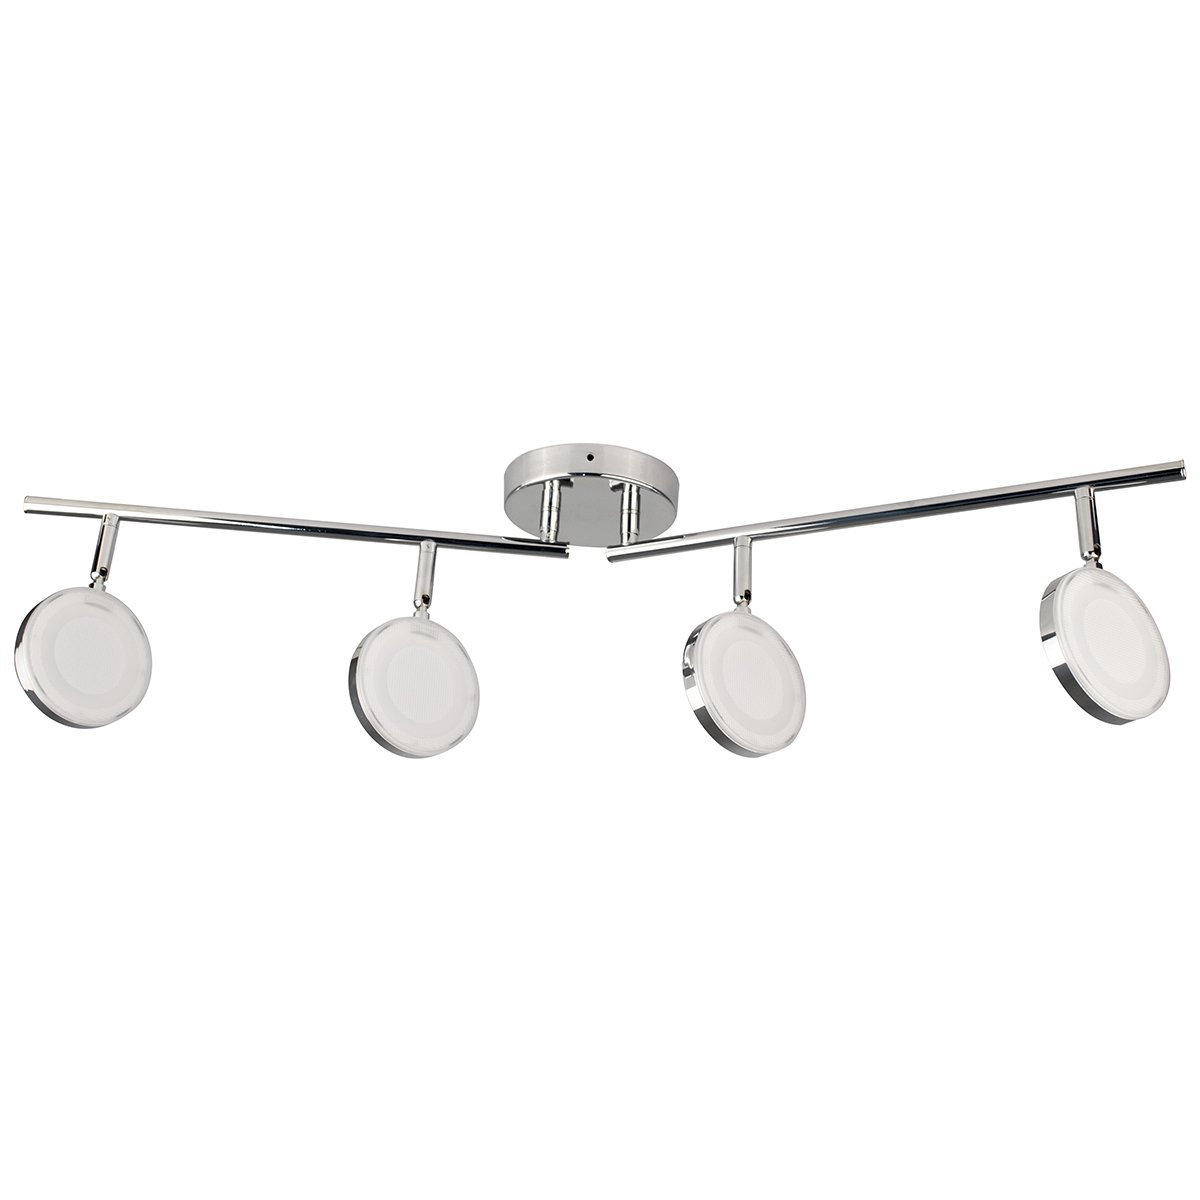 Bazz T170300CH Integrated Four Track Light, Chrome